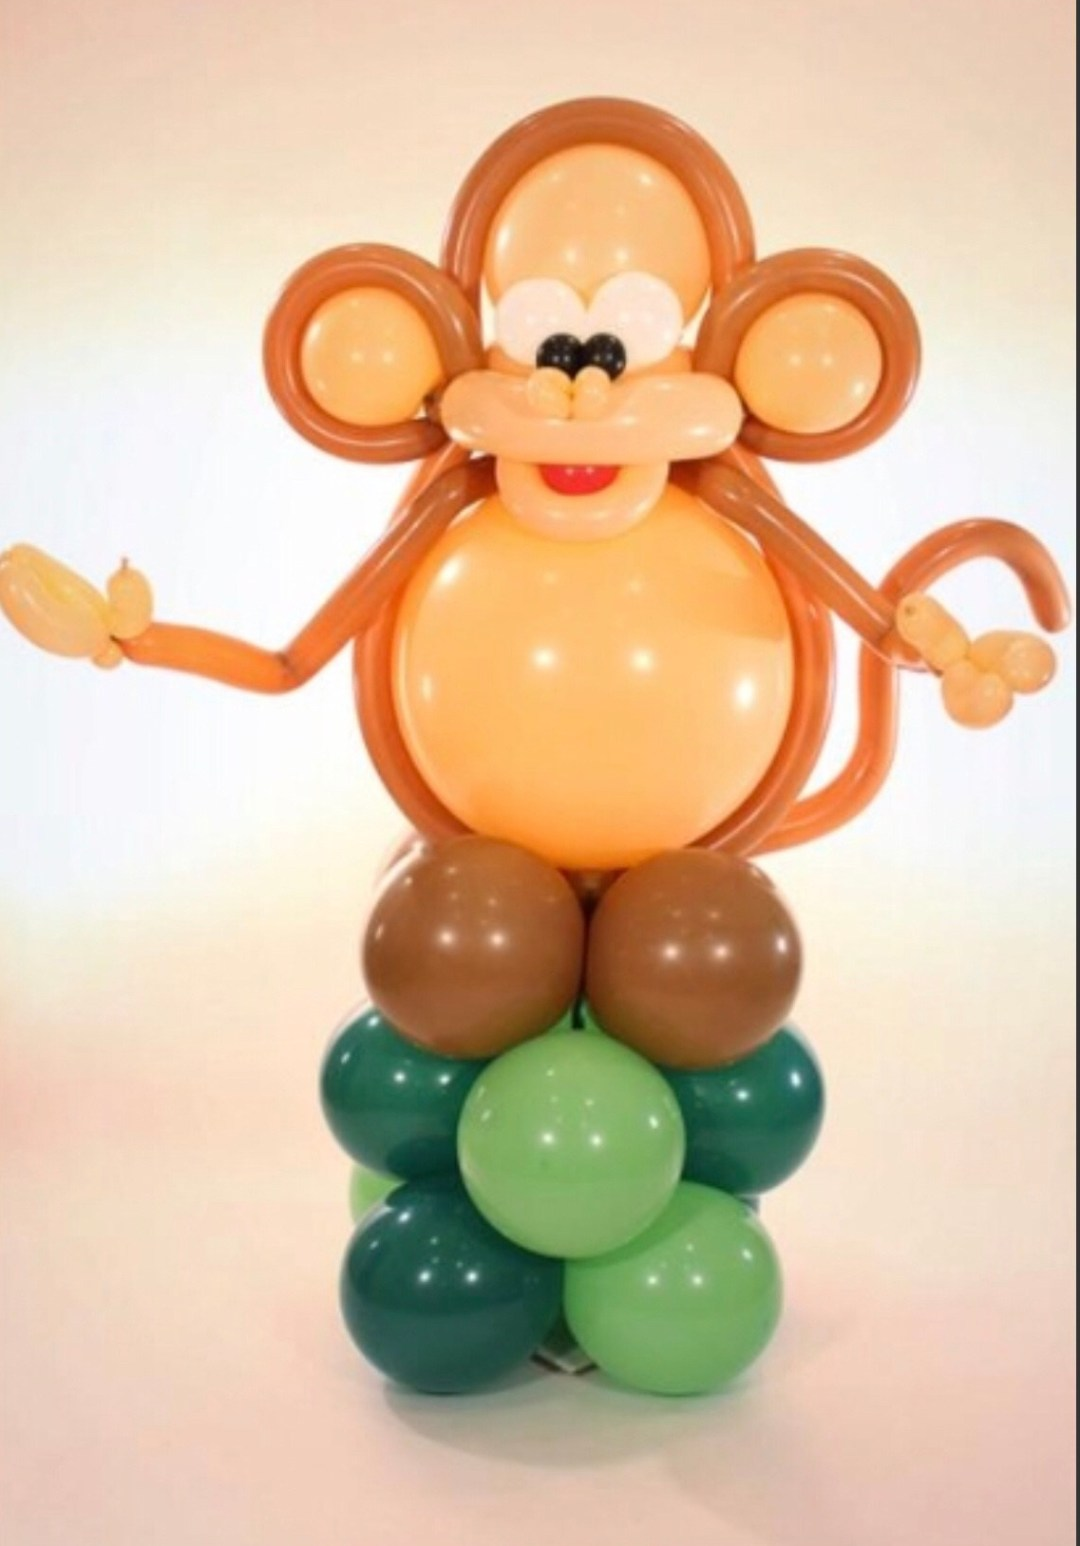 Jumbo Monkey Balloon Sculpture delivered